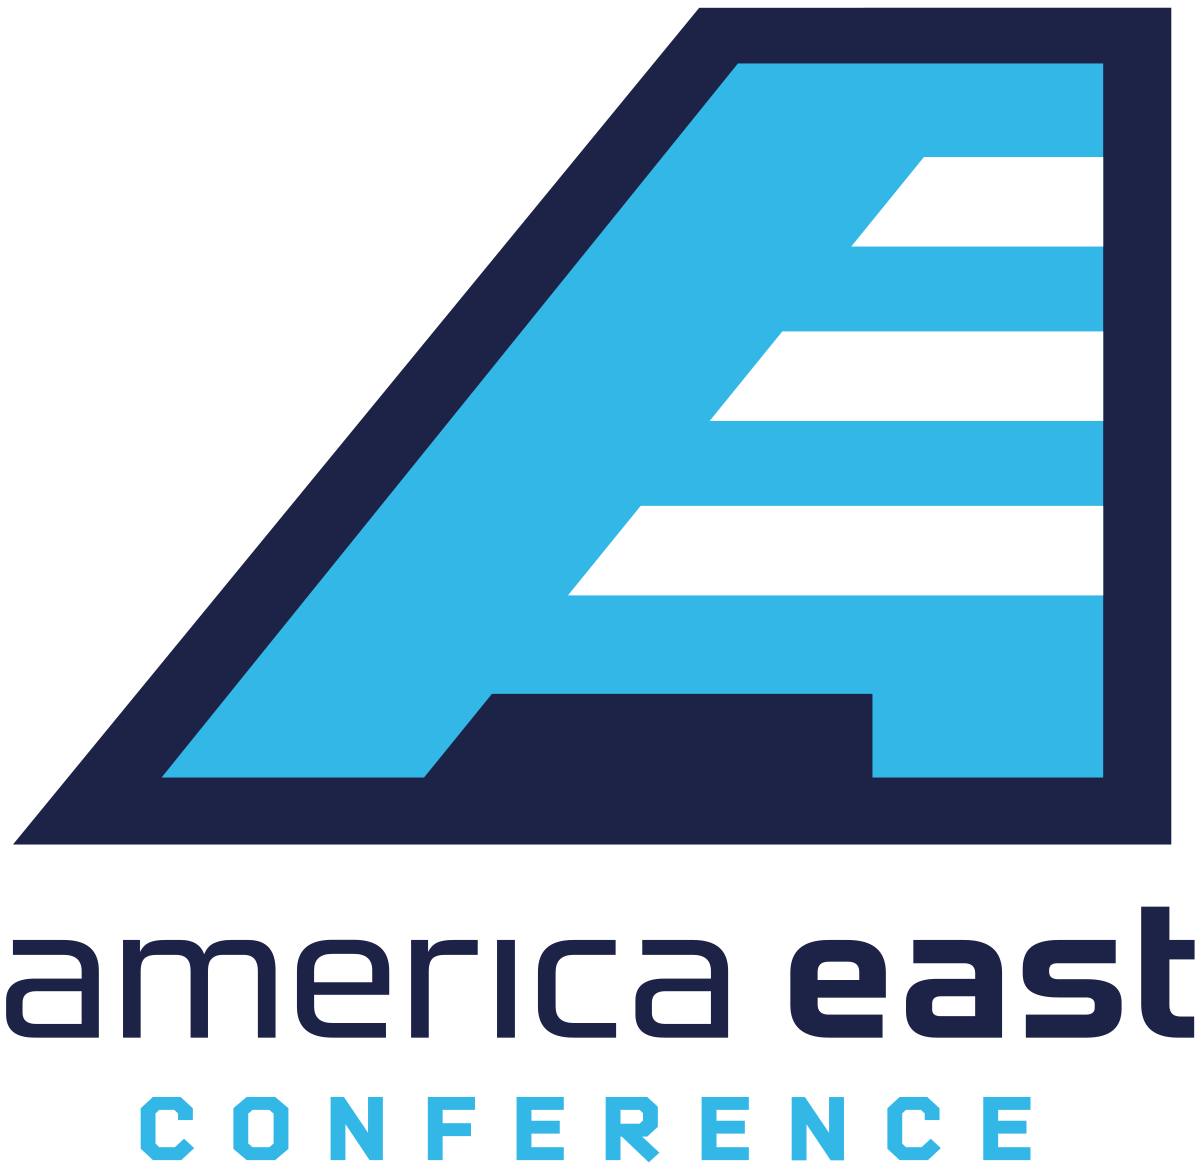 Top Storylines for Every America East Team